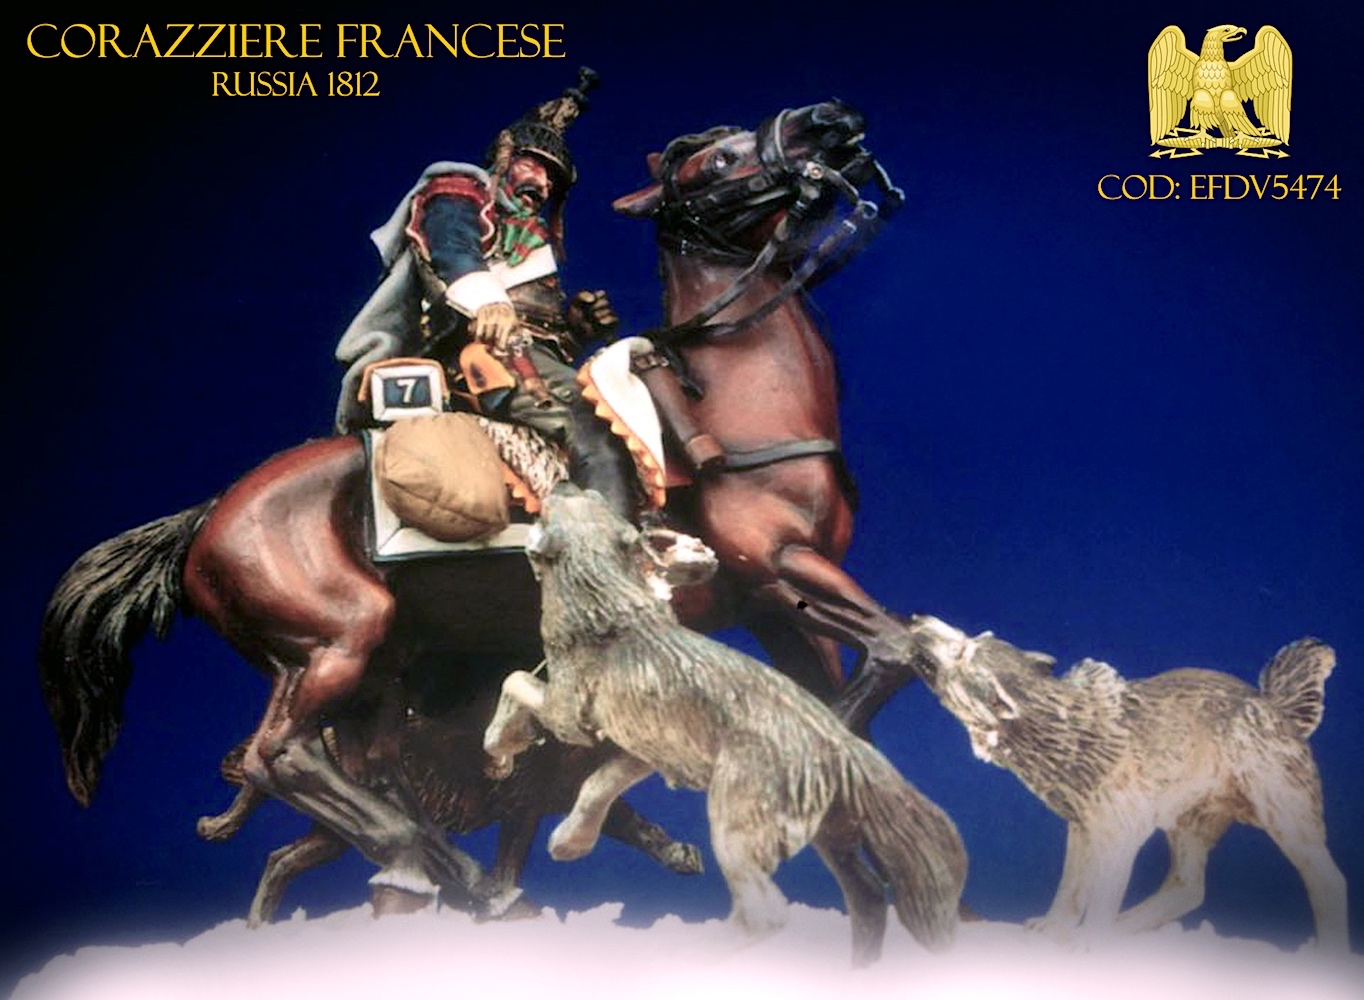 Corazziere Francese 1812